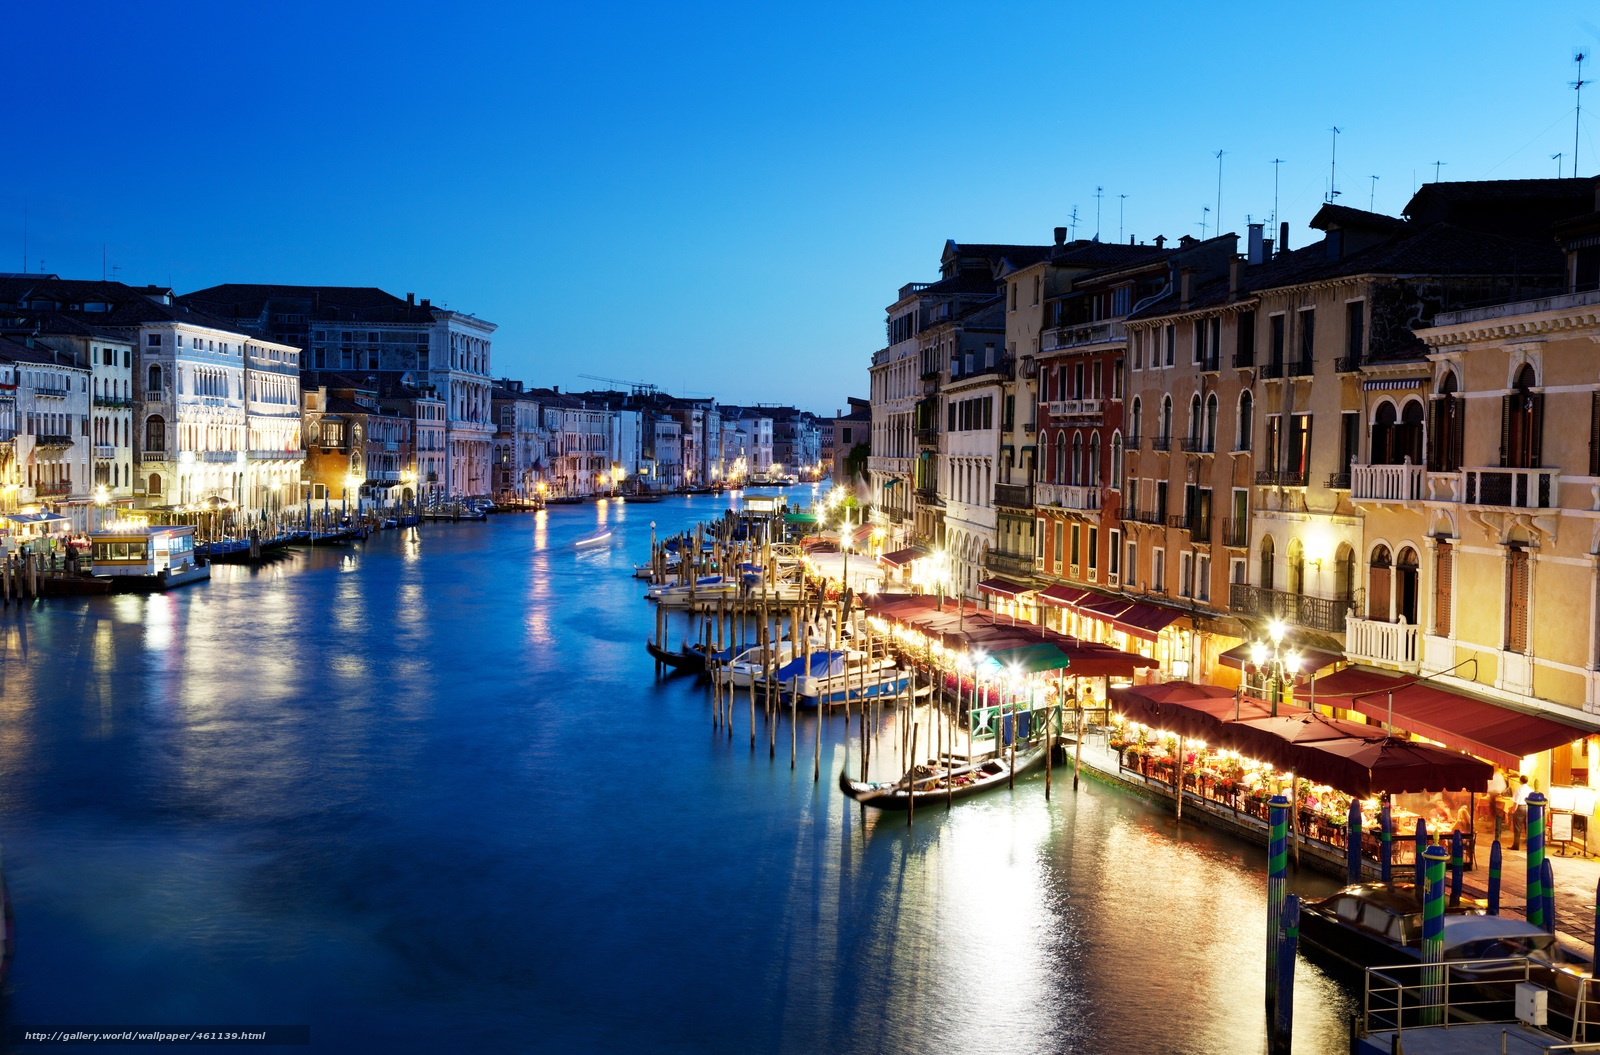 Download wallpaper The Grand Canal, Venice, Italy, canal grande